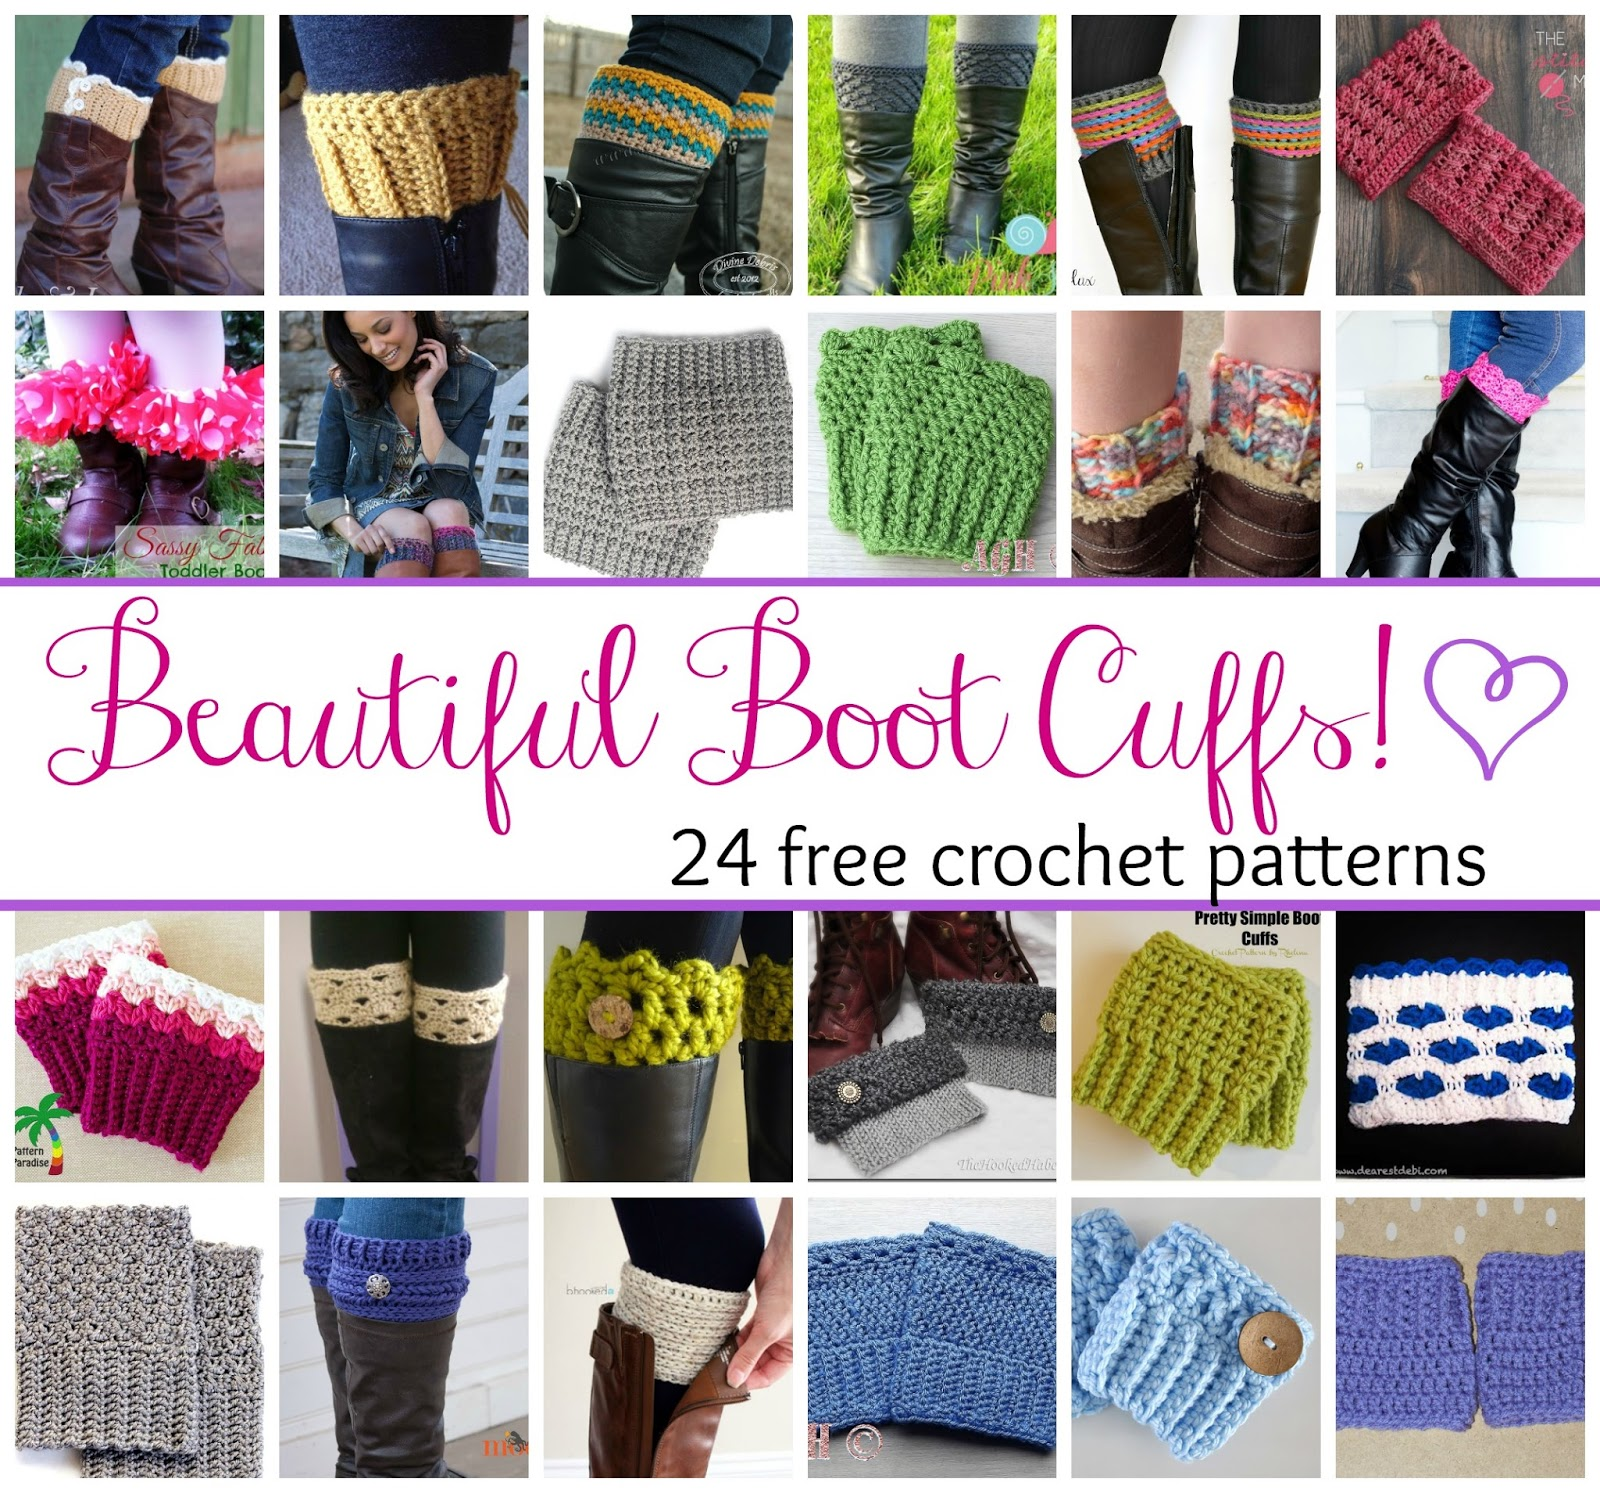 Fiber Flux: Beautiful Boot Cuffs! 24 Free Crochet Patterns...